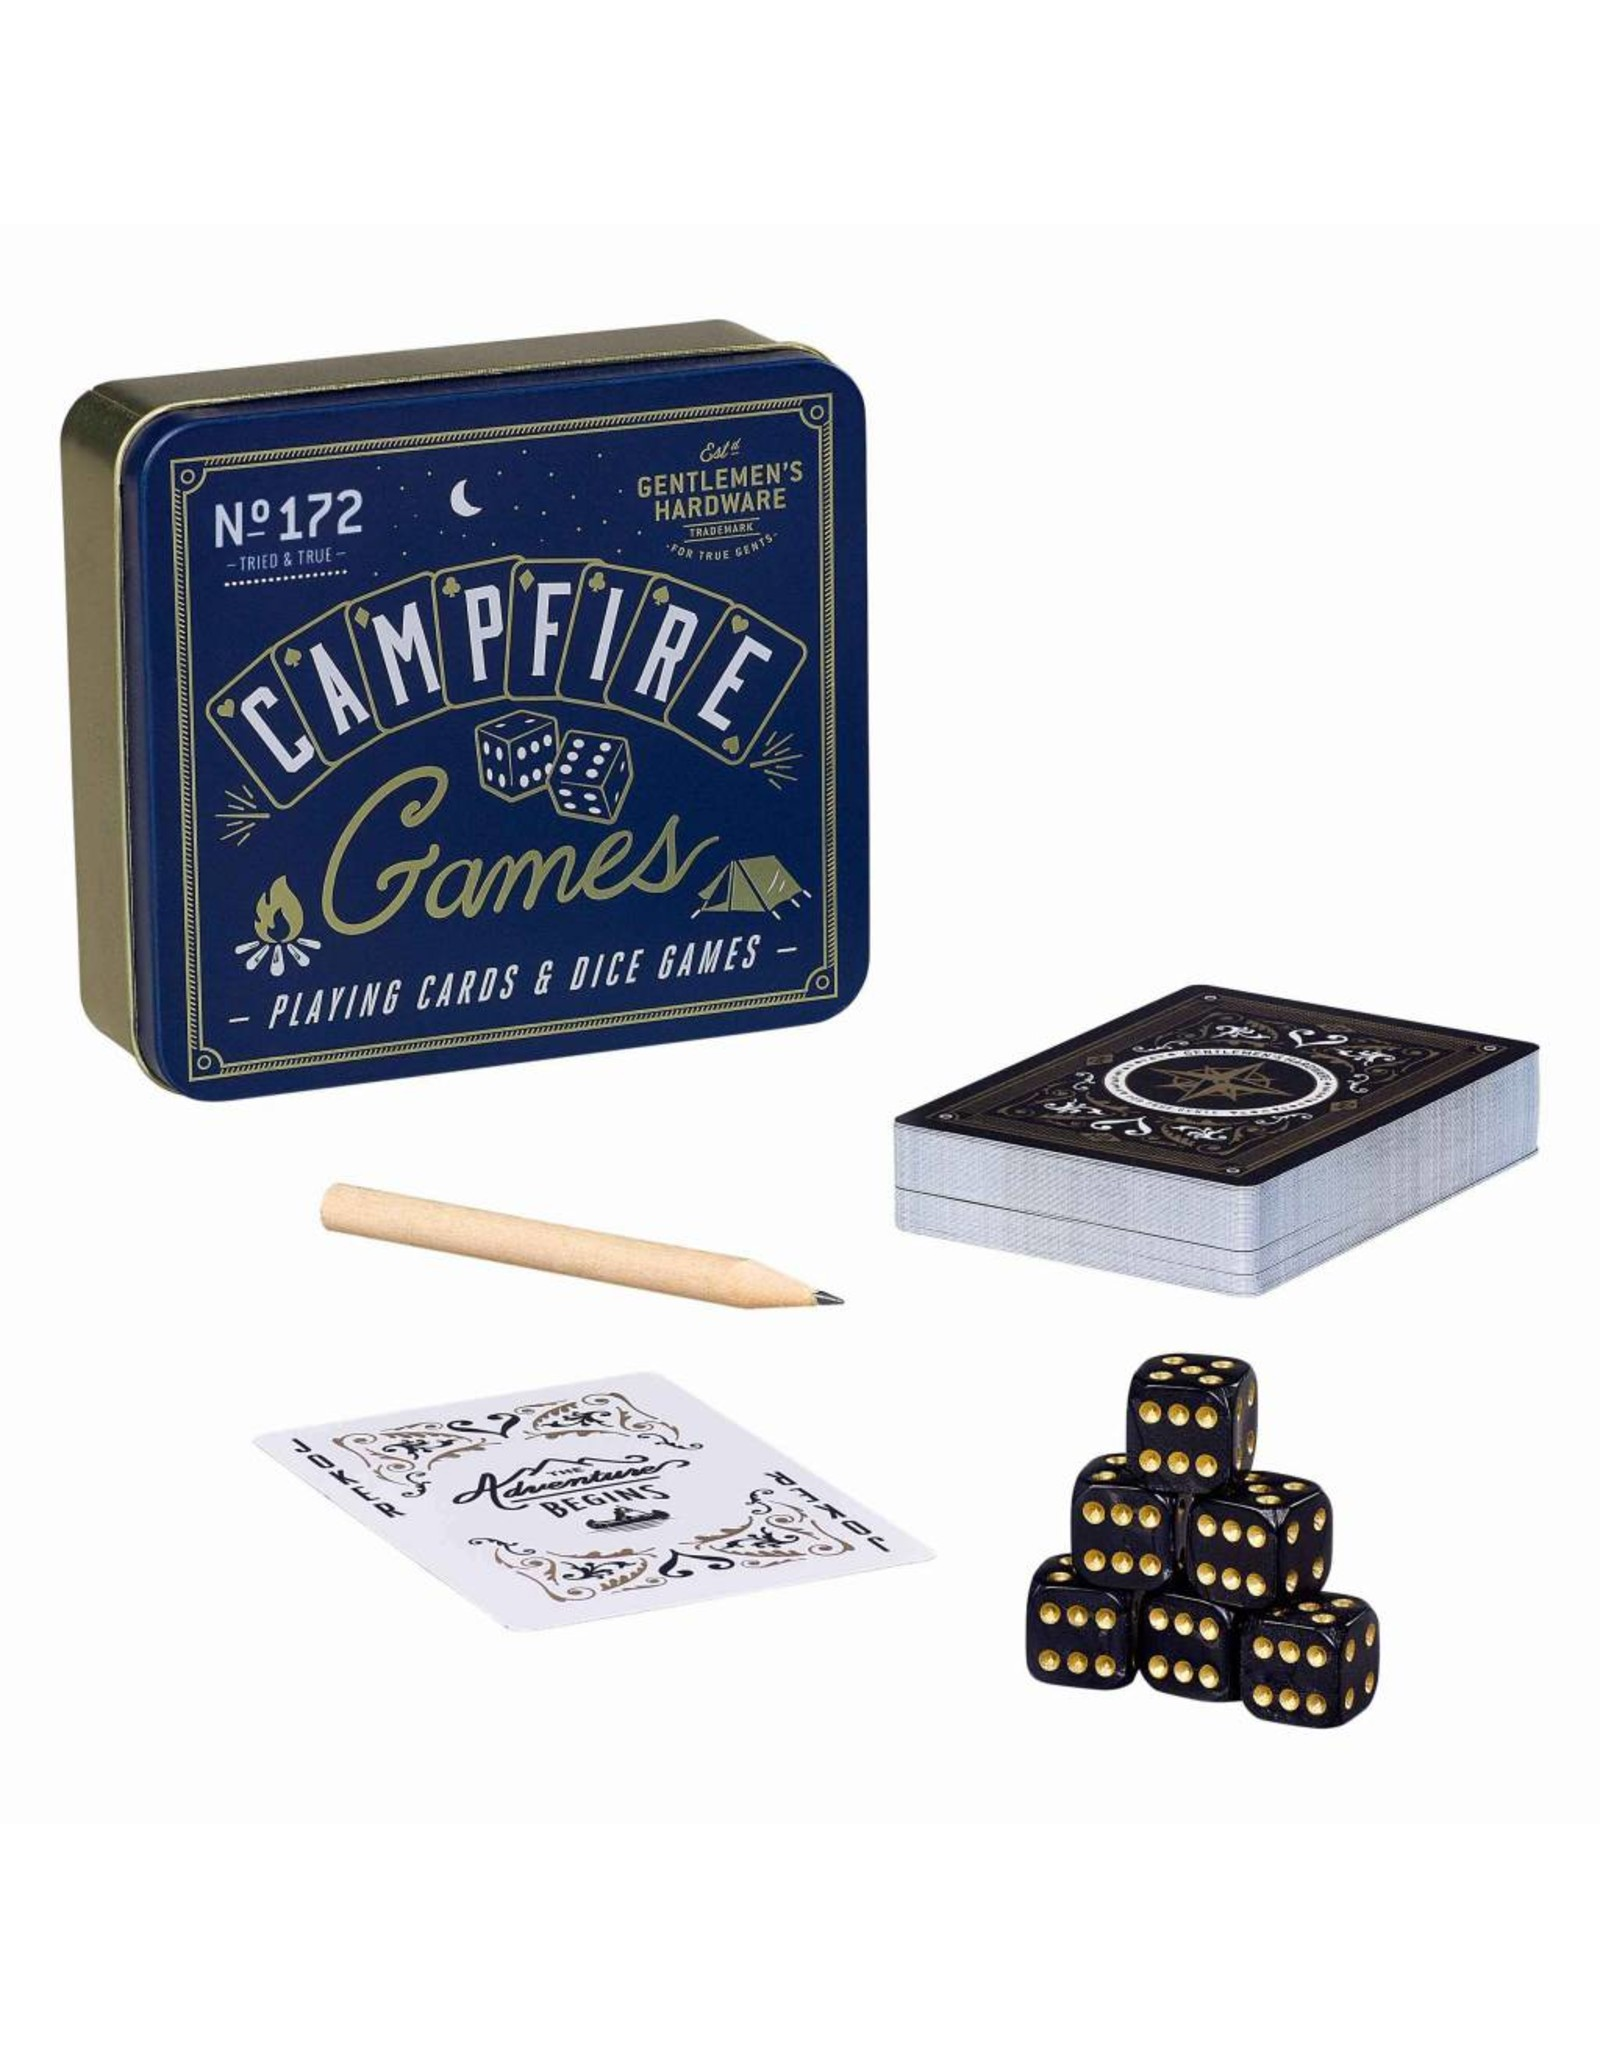 Gentleman's Hardware Campfire Games